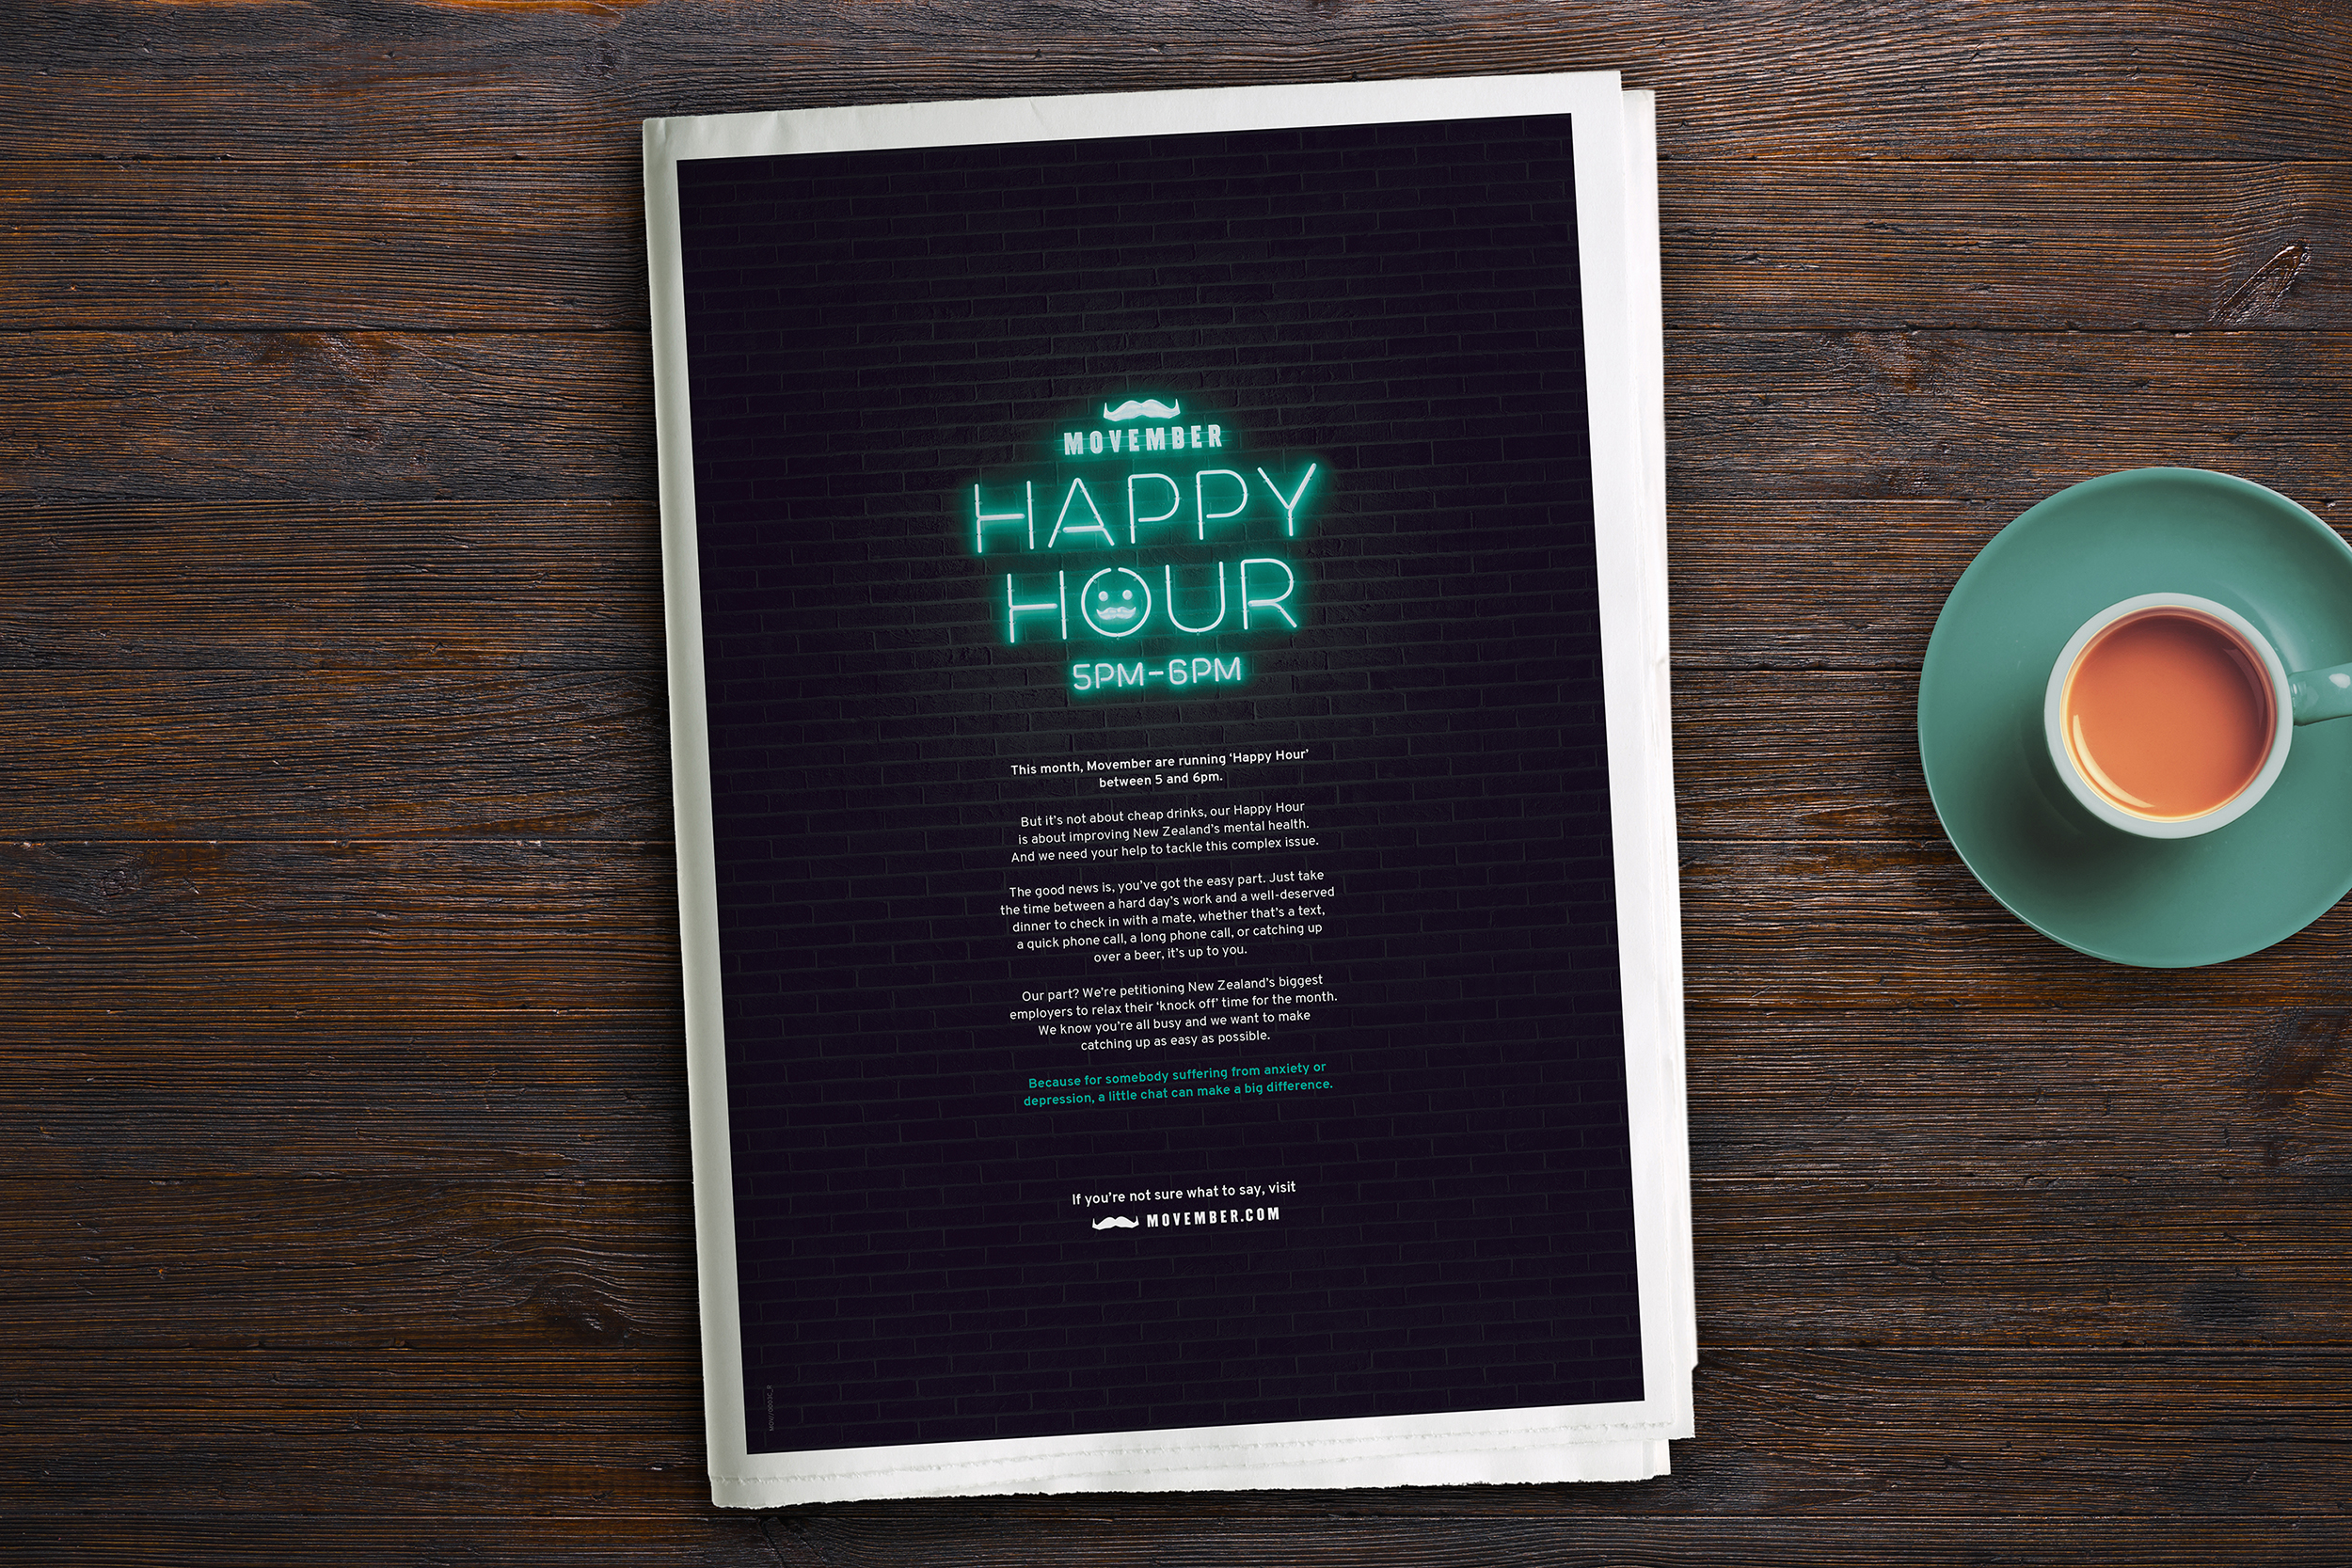 The Movember Foundation and Dentsu Aegis Network launch new 'Happy Hour' campaign